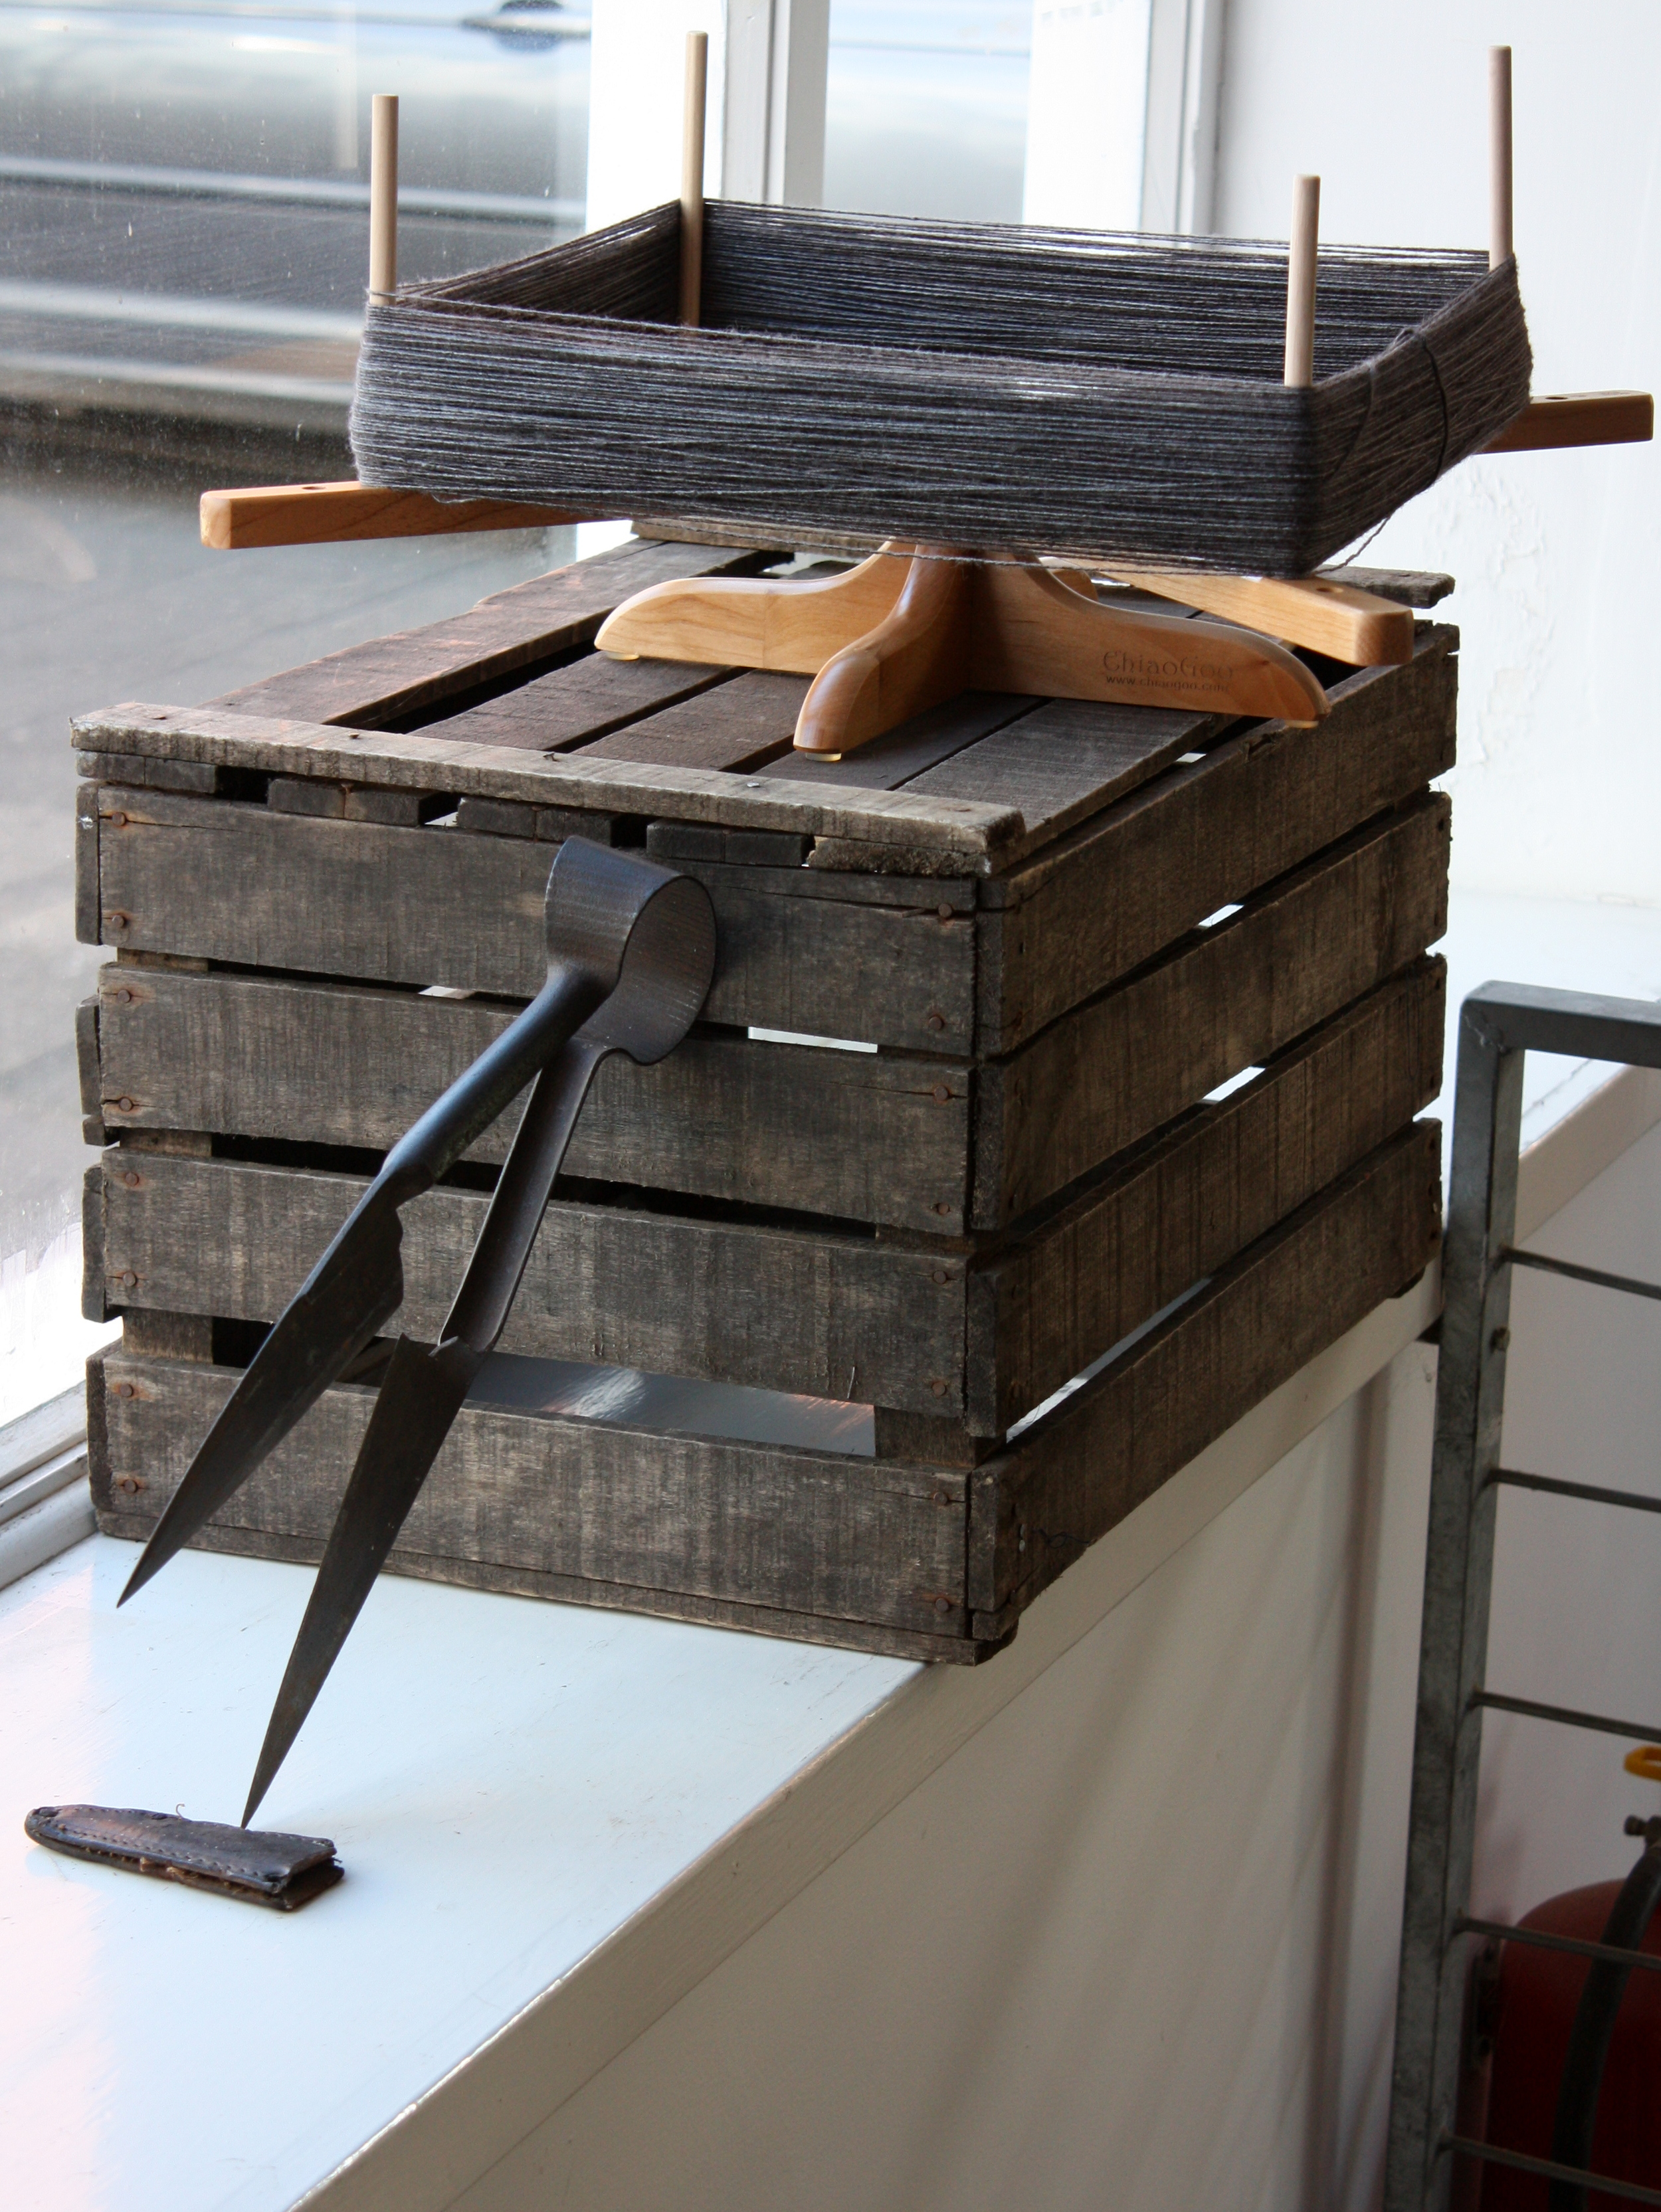 Sheers and swift on display at YAK